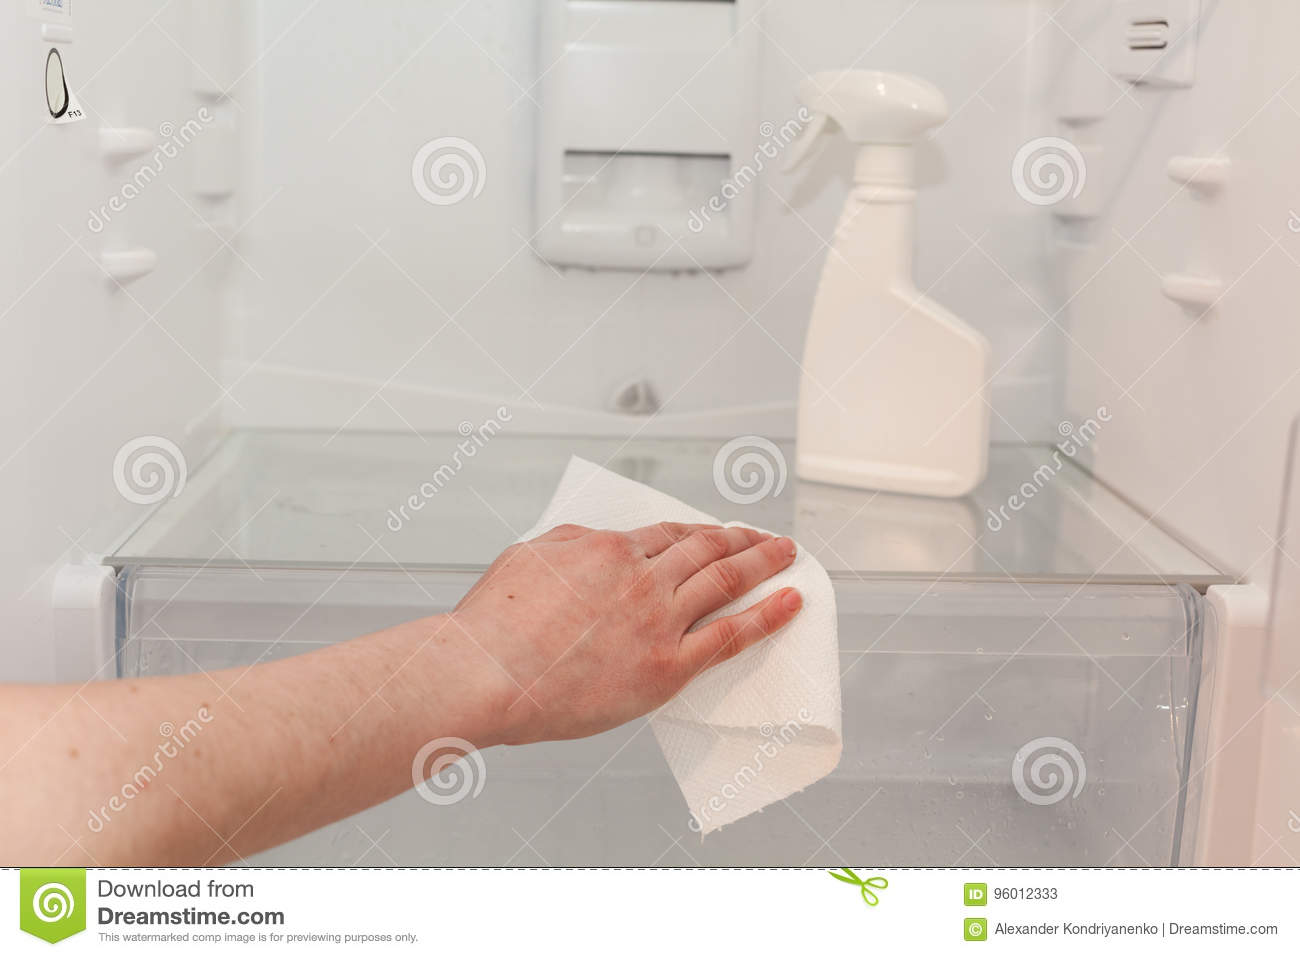 House cleaning - spray bottle with detergents for washing the fridge. The housekeeper wipes the shelves of a clean refrigerator wi